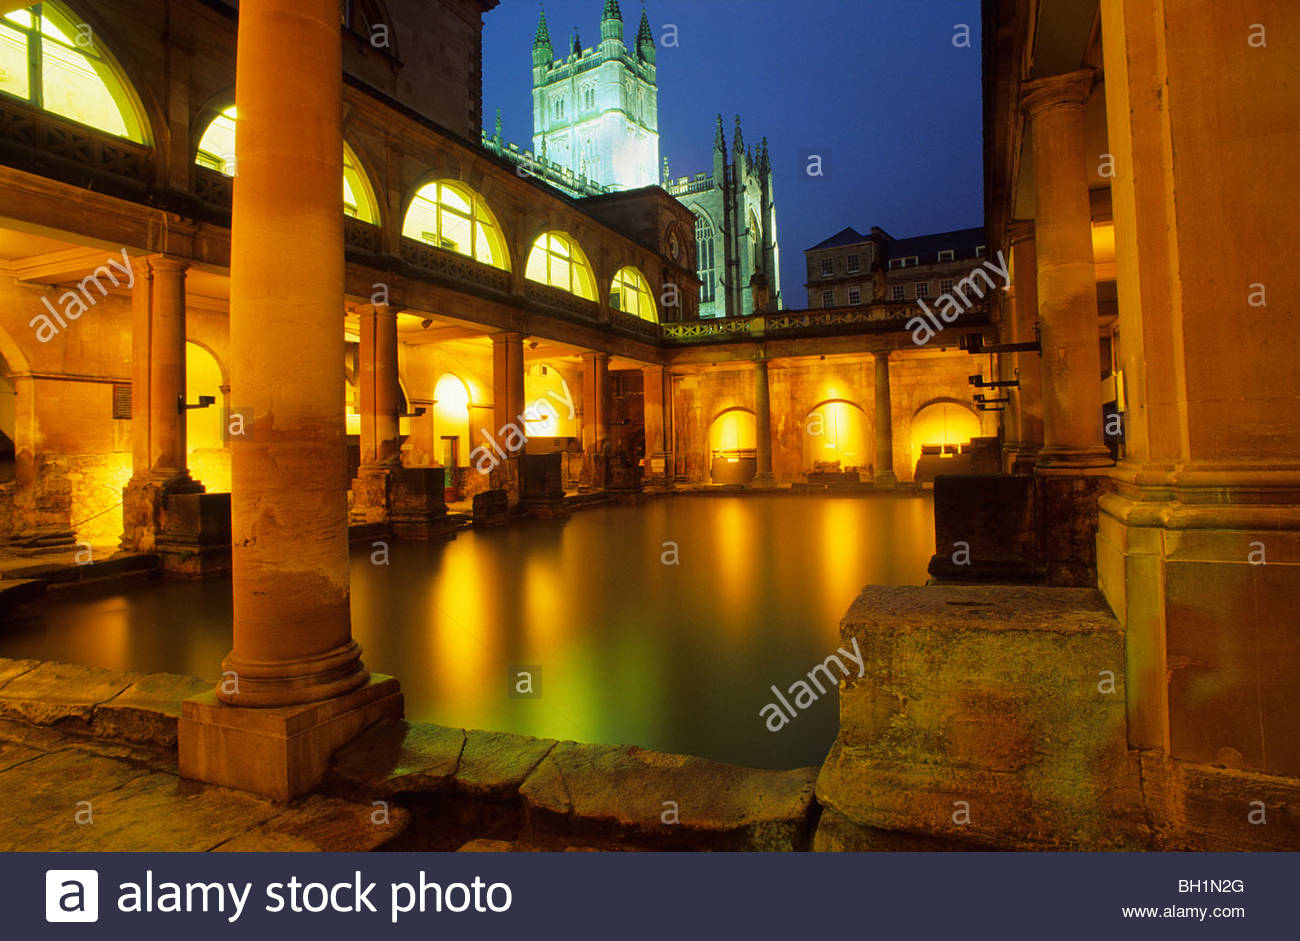 Europe, Great Britain, England, Avon, Bath, roman bath - Stock Image